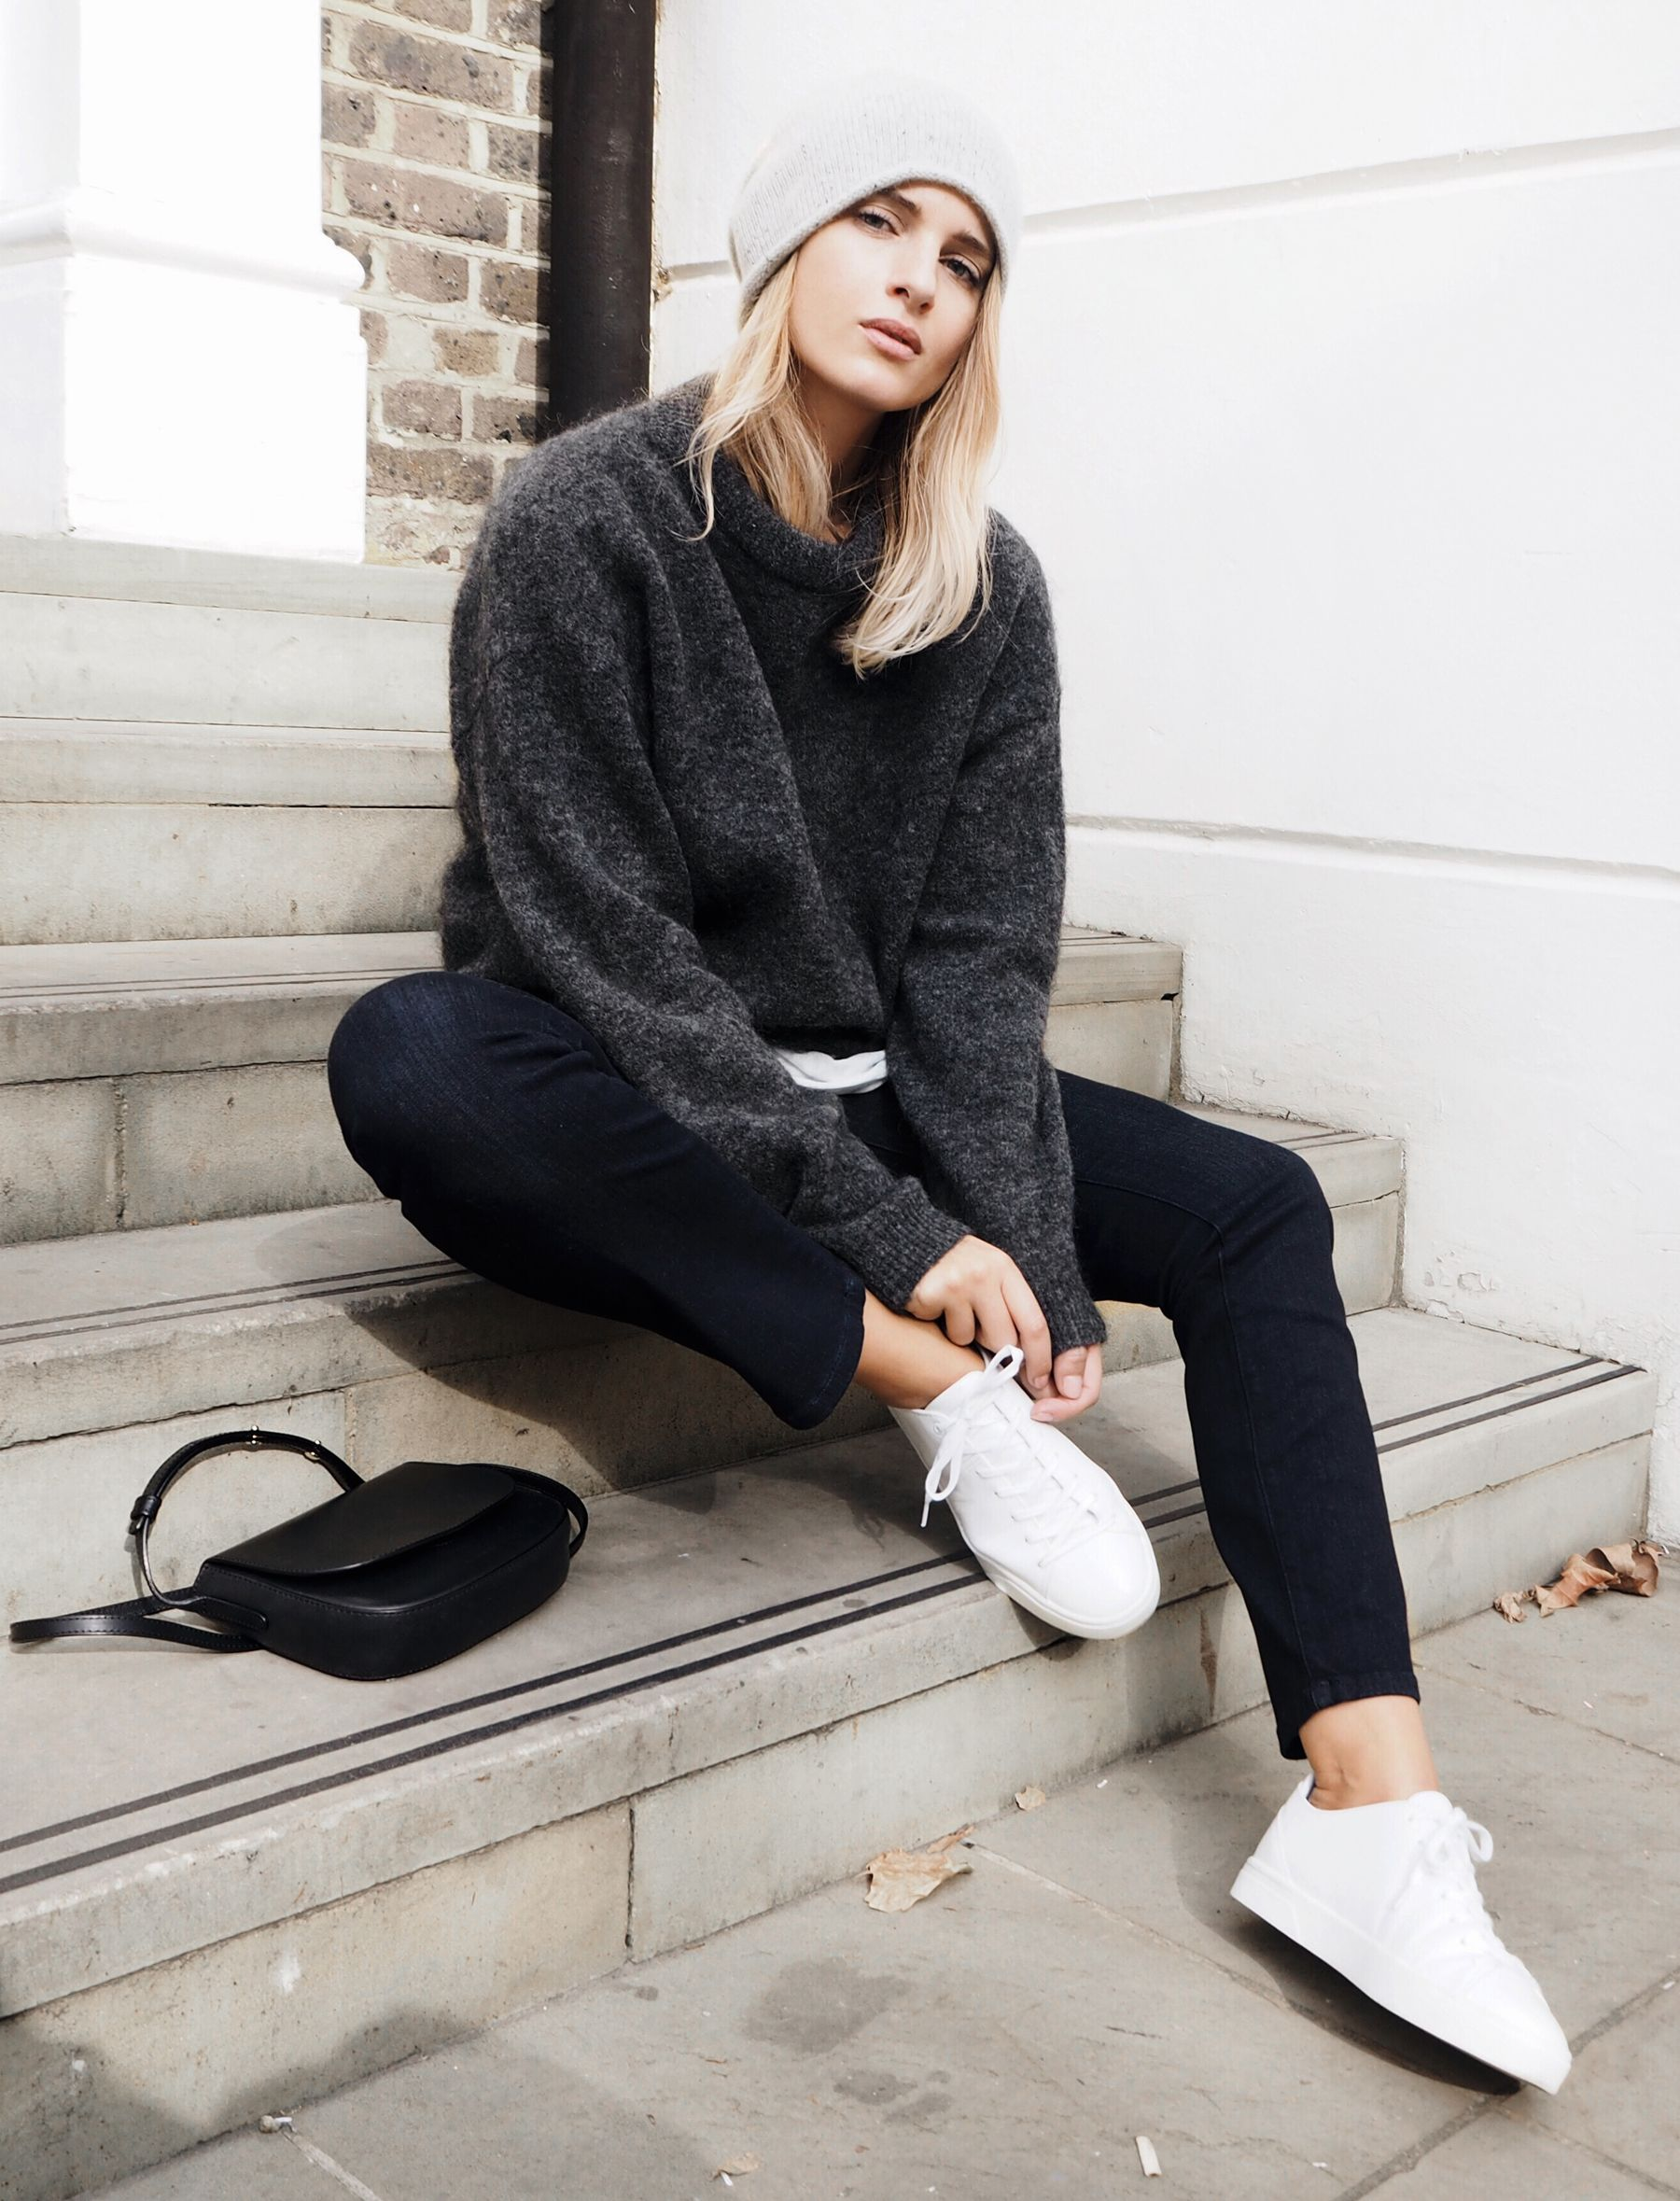 dd875eb0f0b Mirjam Flatau wears a gorgeous knit sweater with black jeans and sneakers.  Jumper  Acne Studios